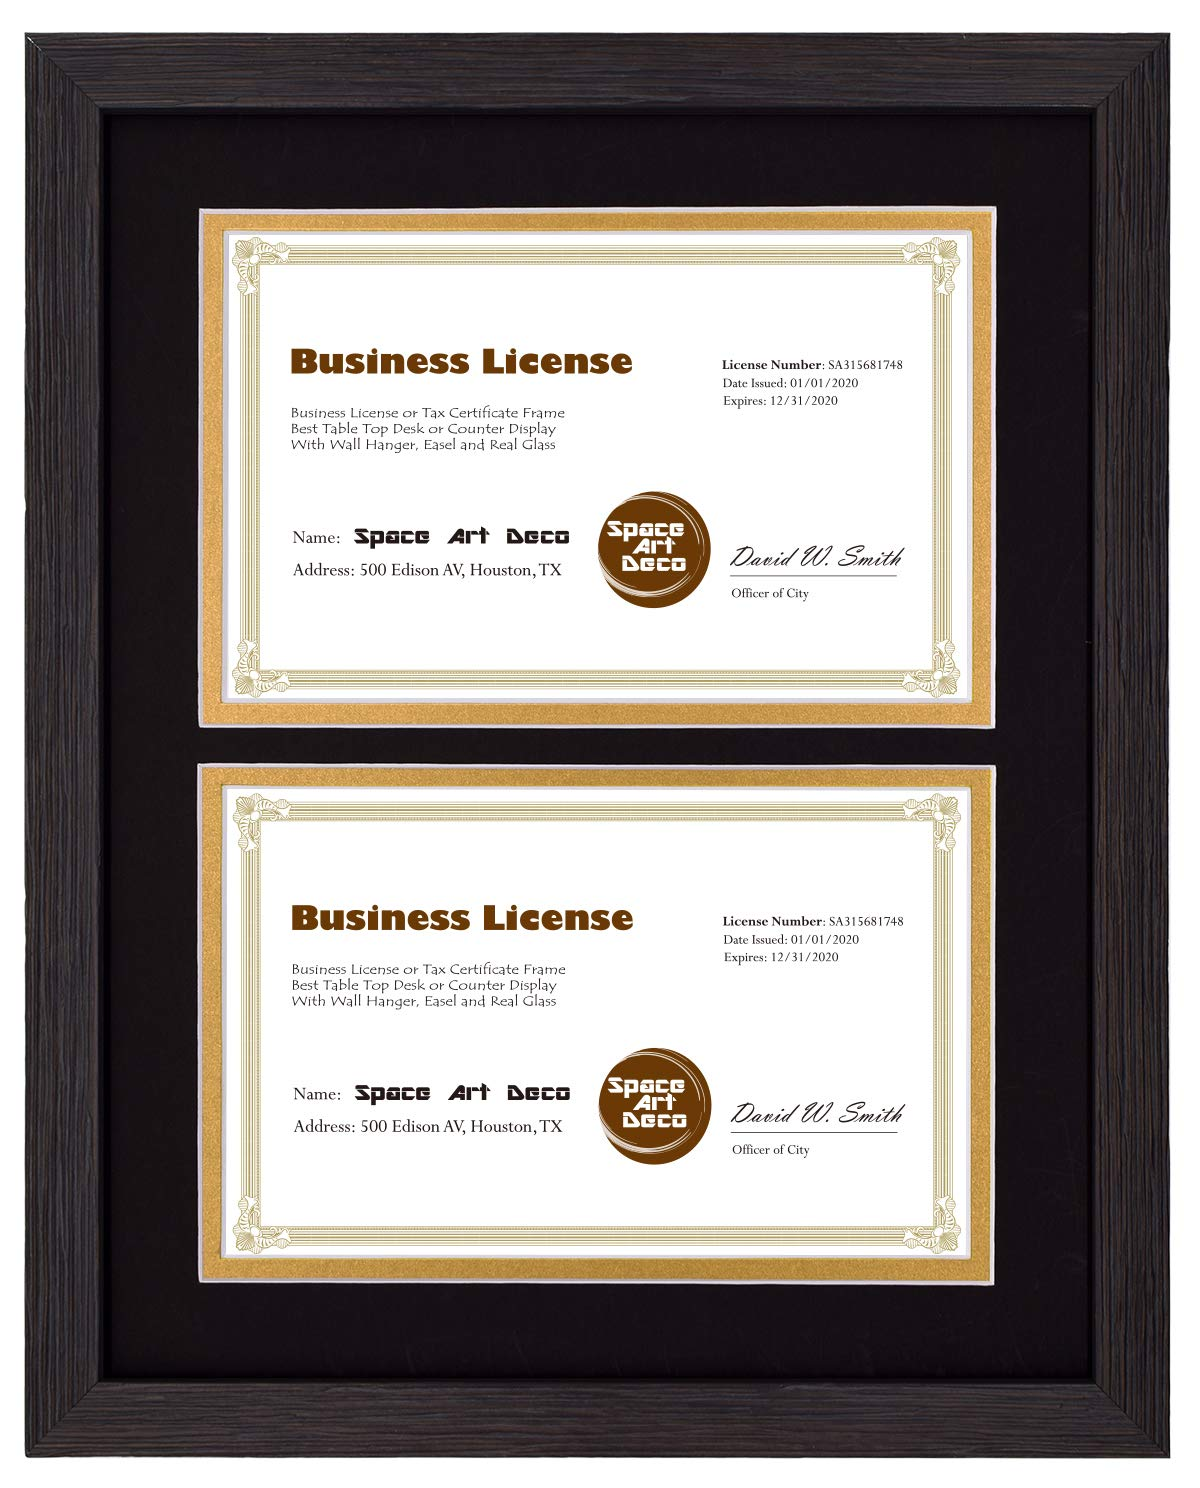 Space Art Deco 11x14 Dark Brown Textured Frame - Black/Gold Double Mat for Two 5.5x8.5 Documents- Sawtooth Hangers - Tempered Glass - for Business Licenses, Certificates, Documents